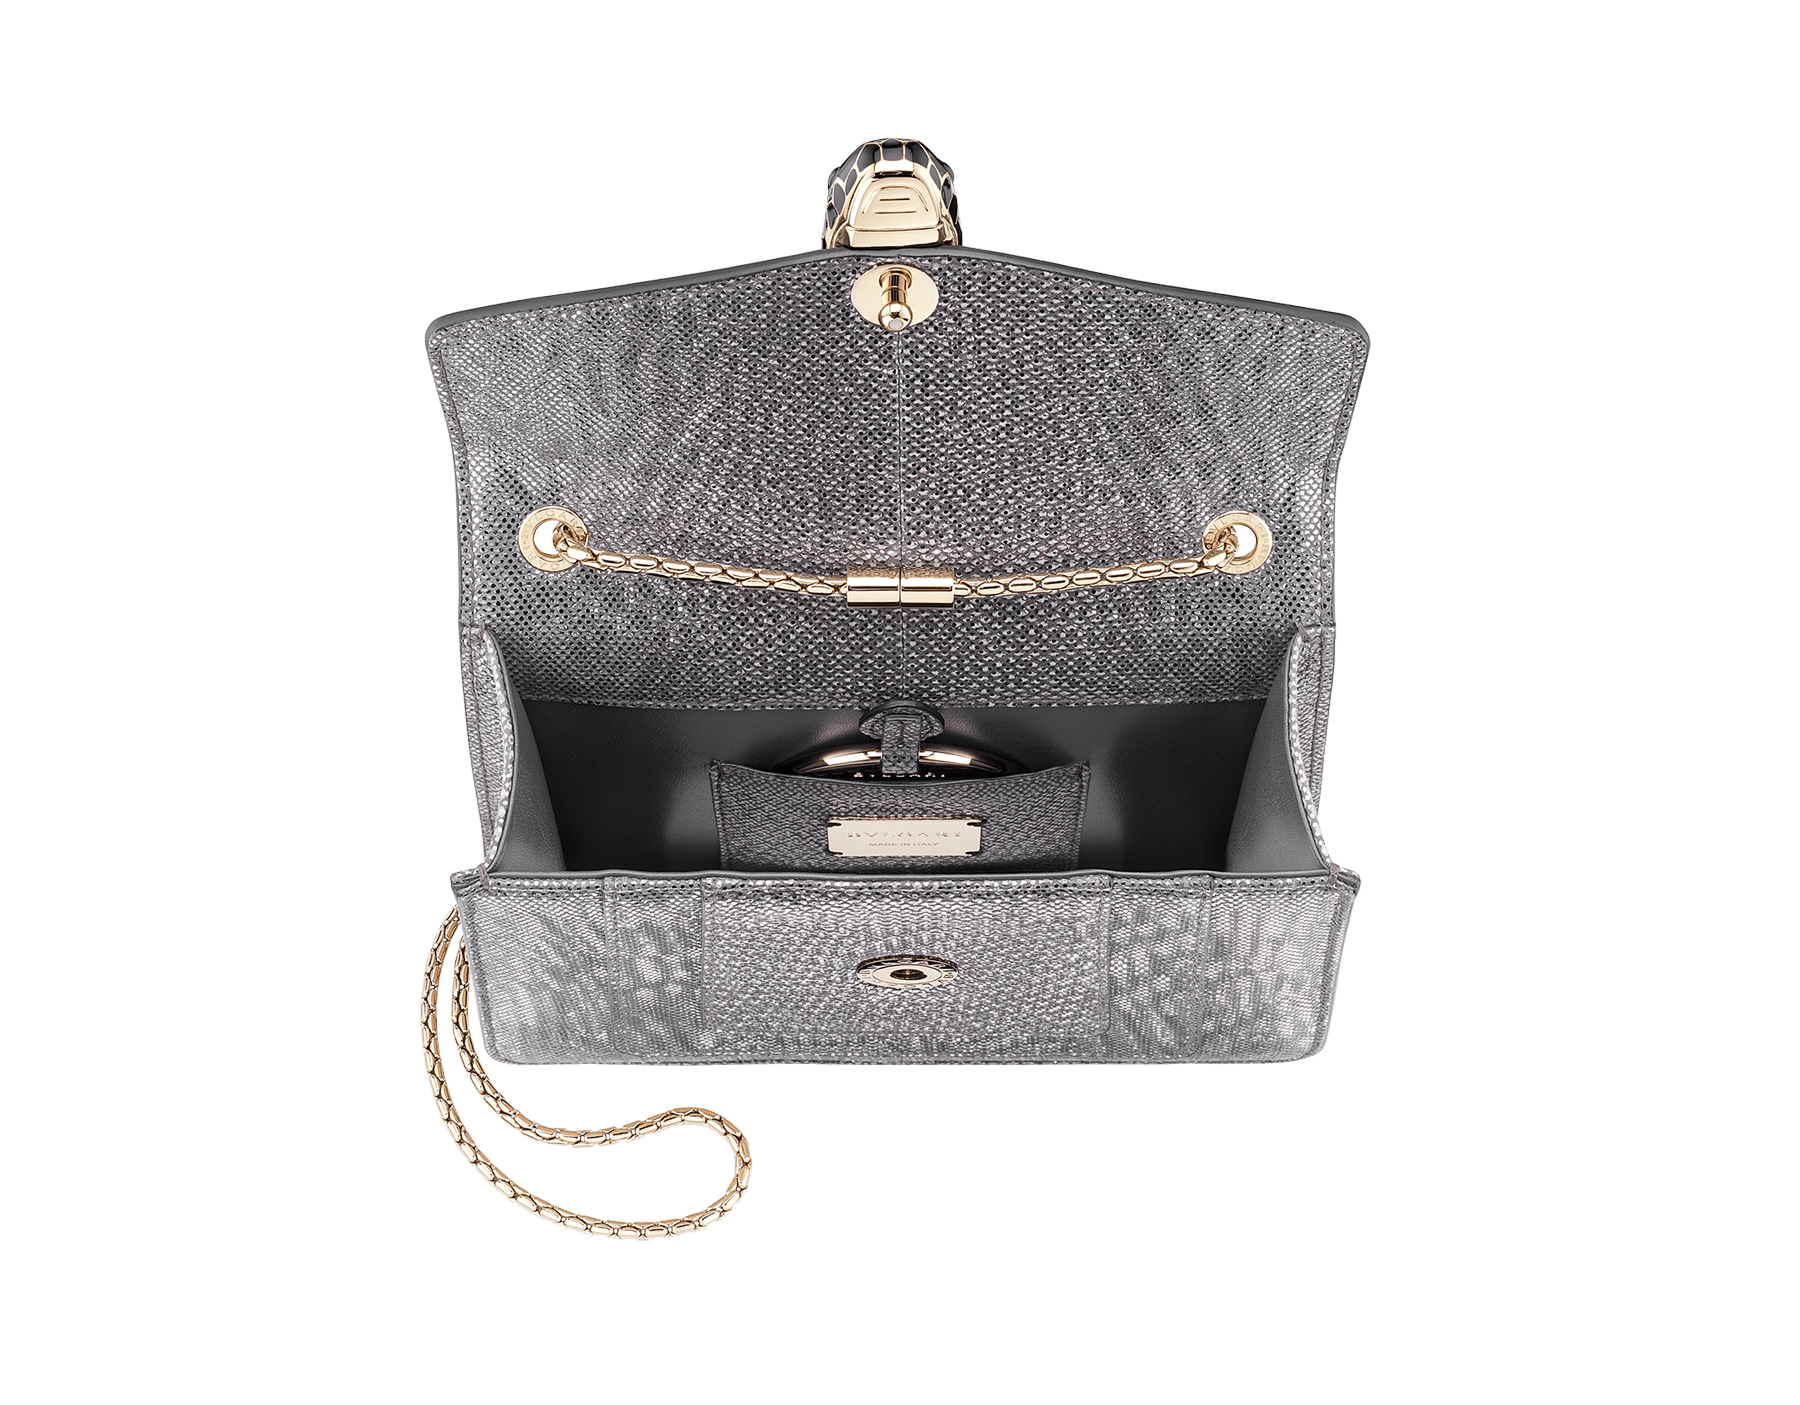 Serpenti Forever crossbody bag in charcoal diamond metallic karung skin. Snakehead closure in light gold plated brass decorated with glitter charcoal diamond and shiny black enamel, and black onyx eyes. 287939 image 4